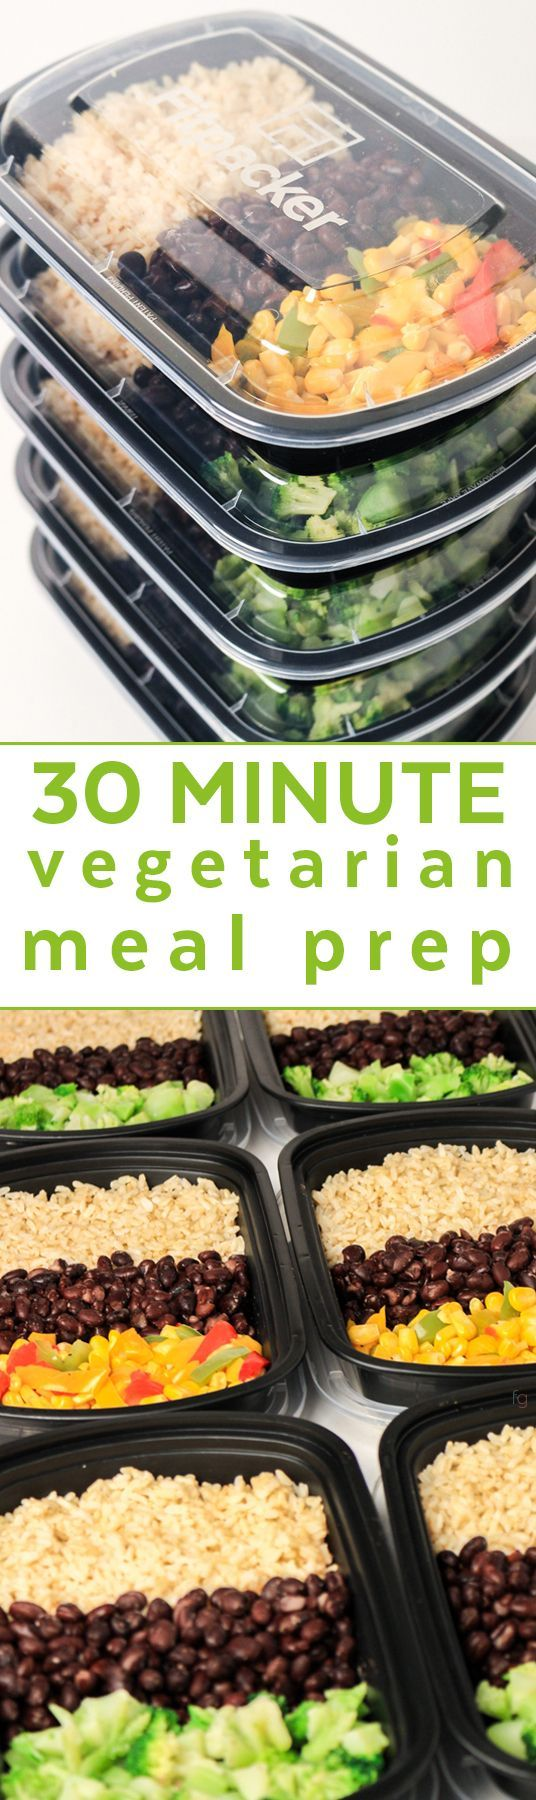 Vegan Meal Prep on a Budget - Easy Vegetarian Meal Prep for the Week - Make Ahead Meals Healthy - Lunch Ideas - Lunch Box Ideas for Adults - Cheap Meals on a Budget - Frugal Living Ideas via @frugalitygal